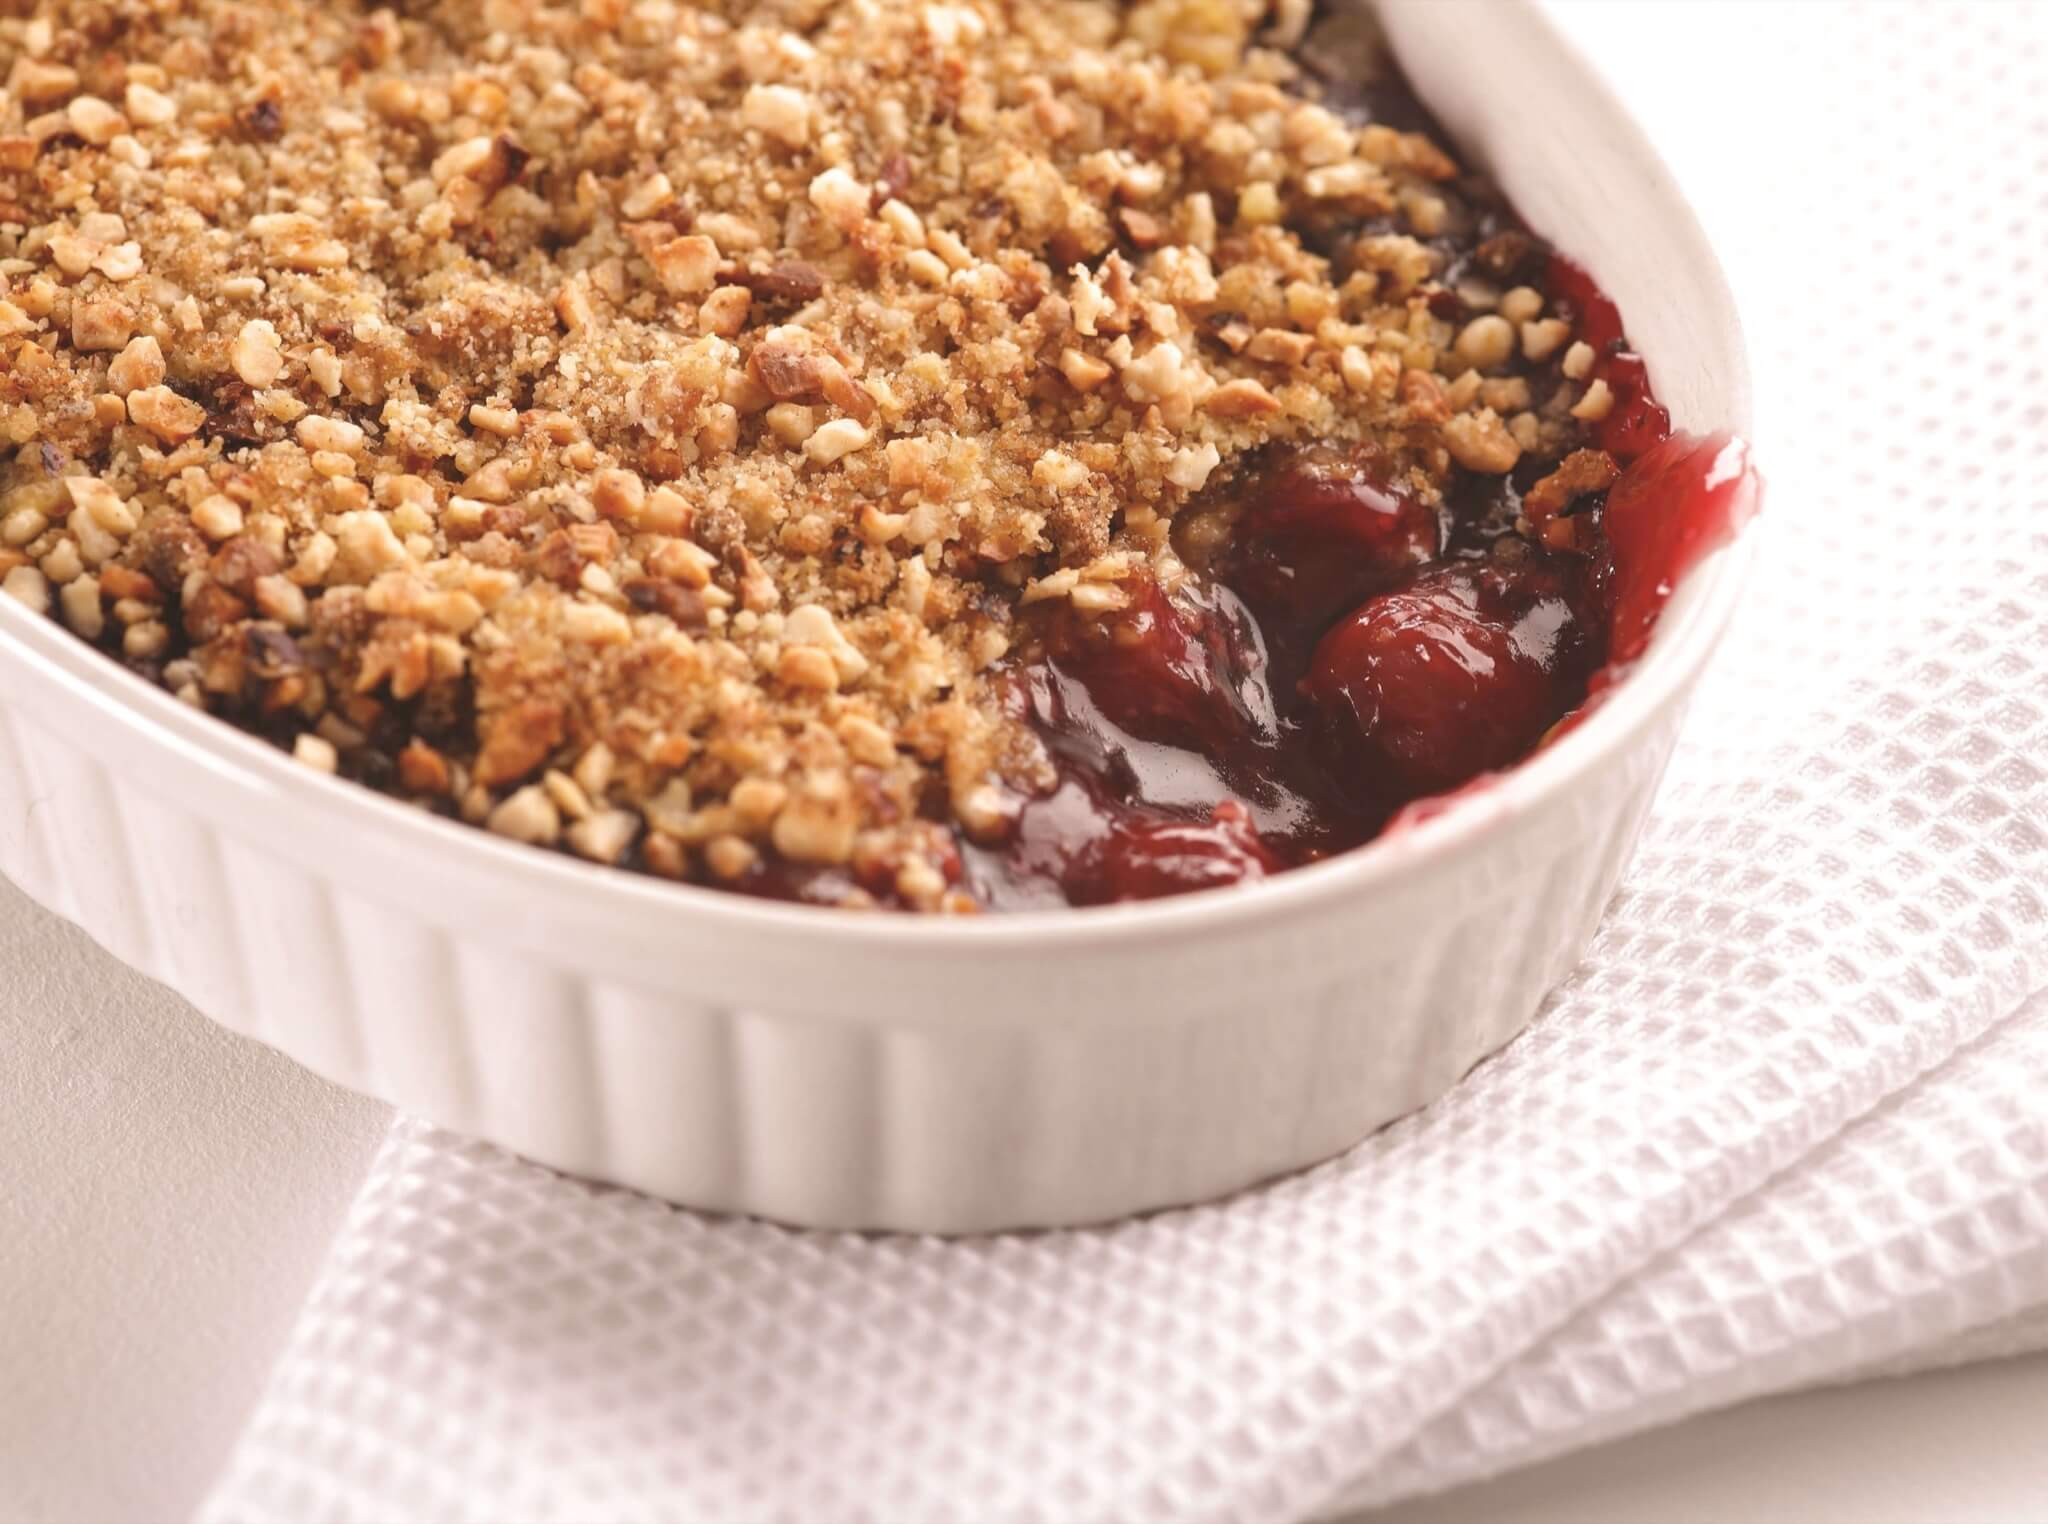 Gluten Free apple and blackberry crumble on a rustic baking tray and tea towel